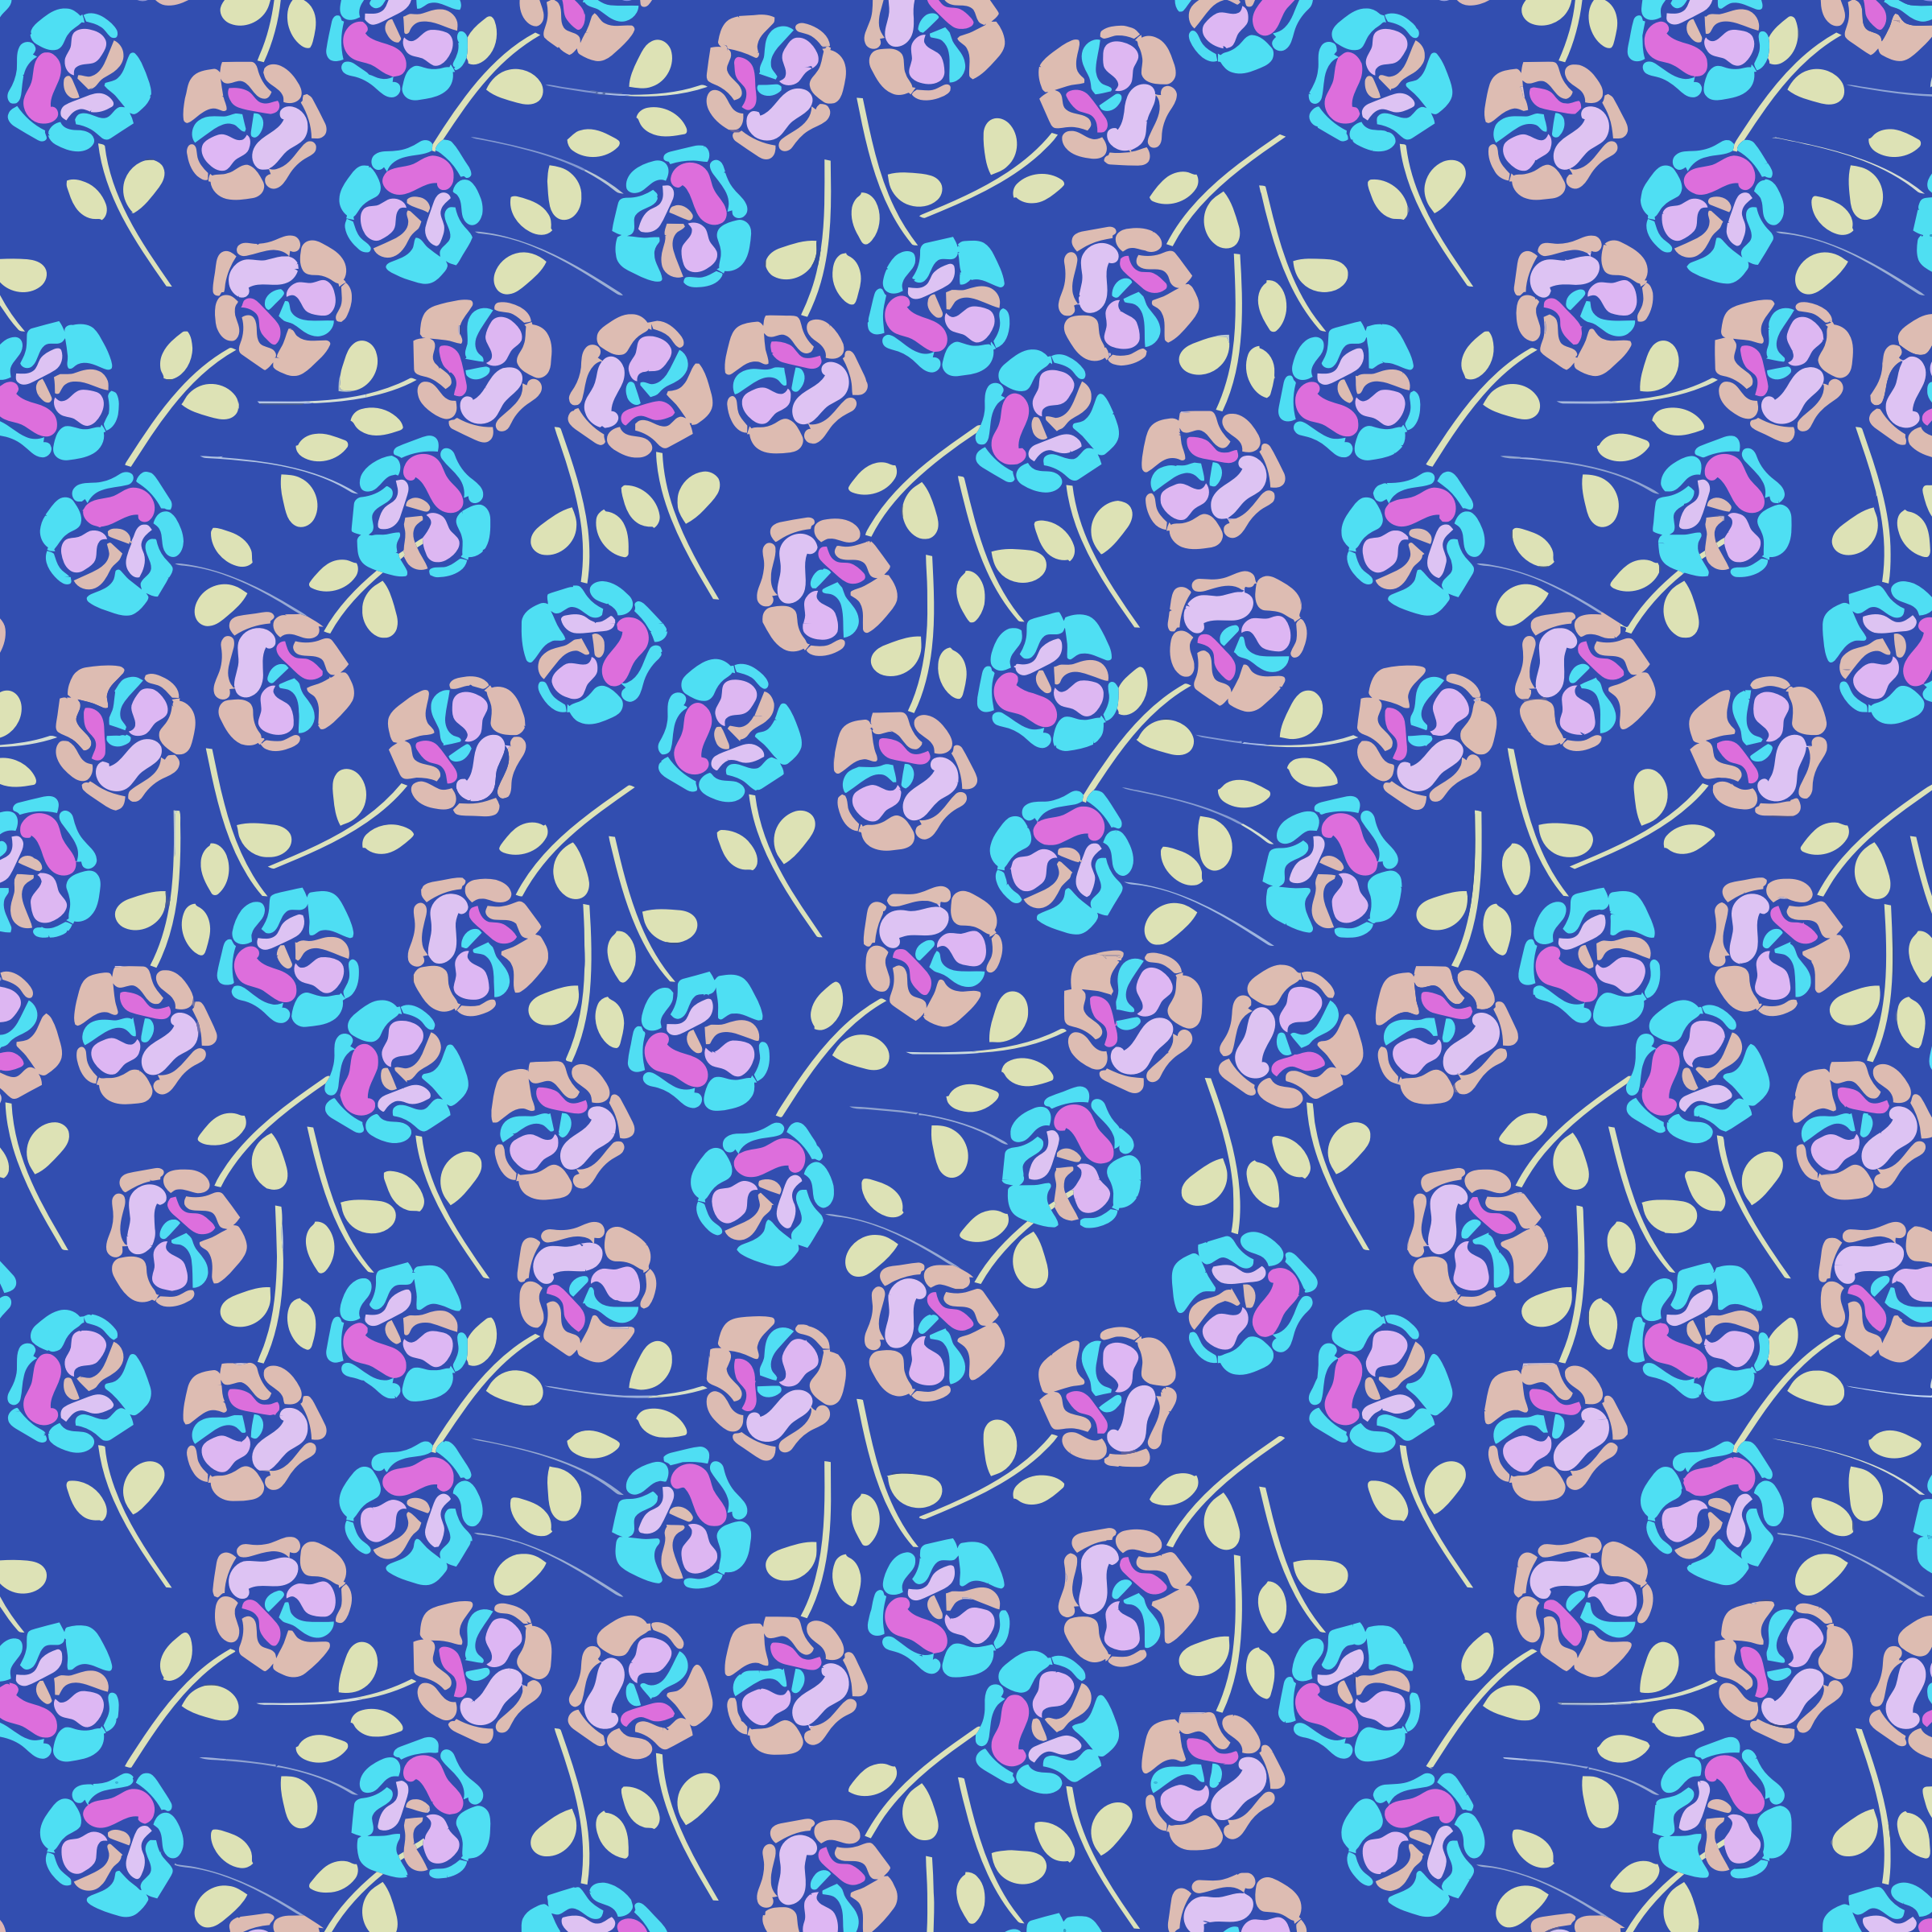 Seamless Floral Pattern 2 by GDJ